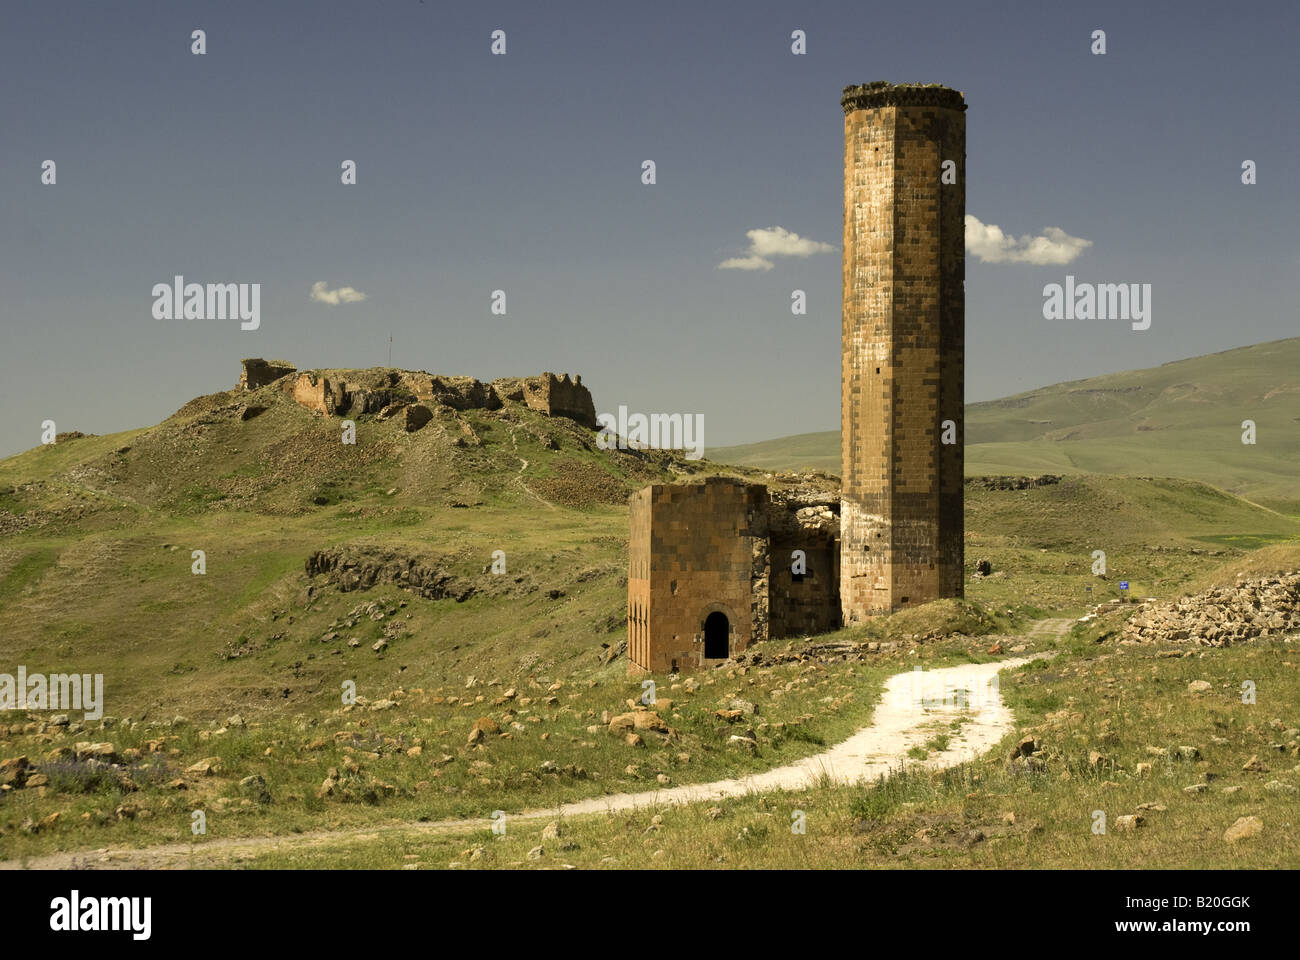 Remains of Menucehir Mosque, with Citadel behind, at Ani, ruined capital of Armenian Kingdom on border with Armenia - Stock Image